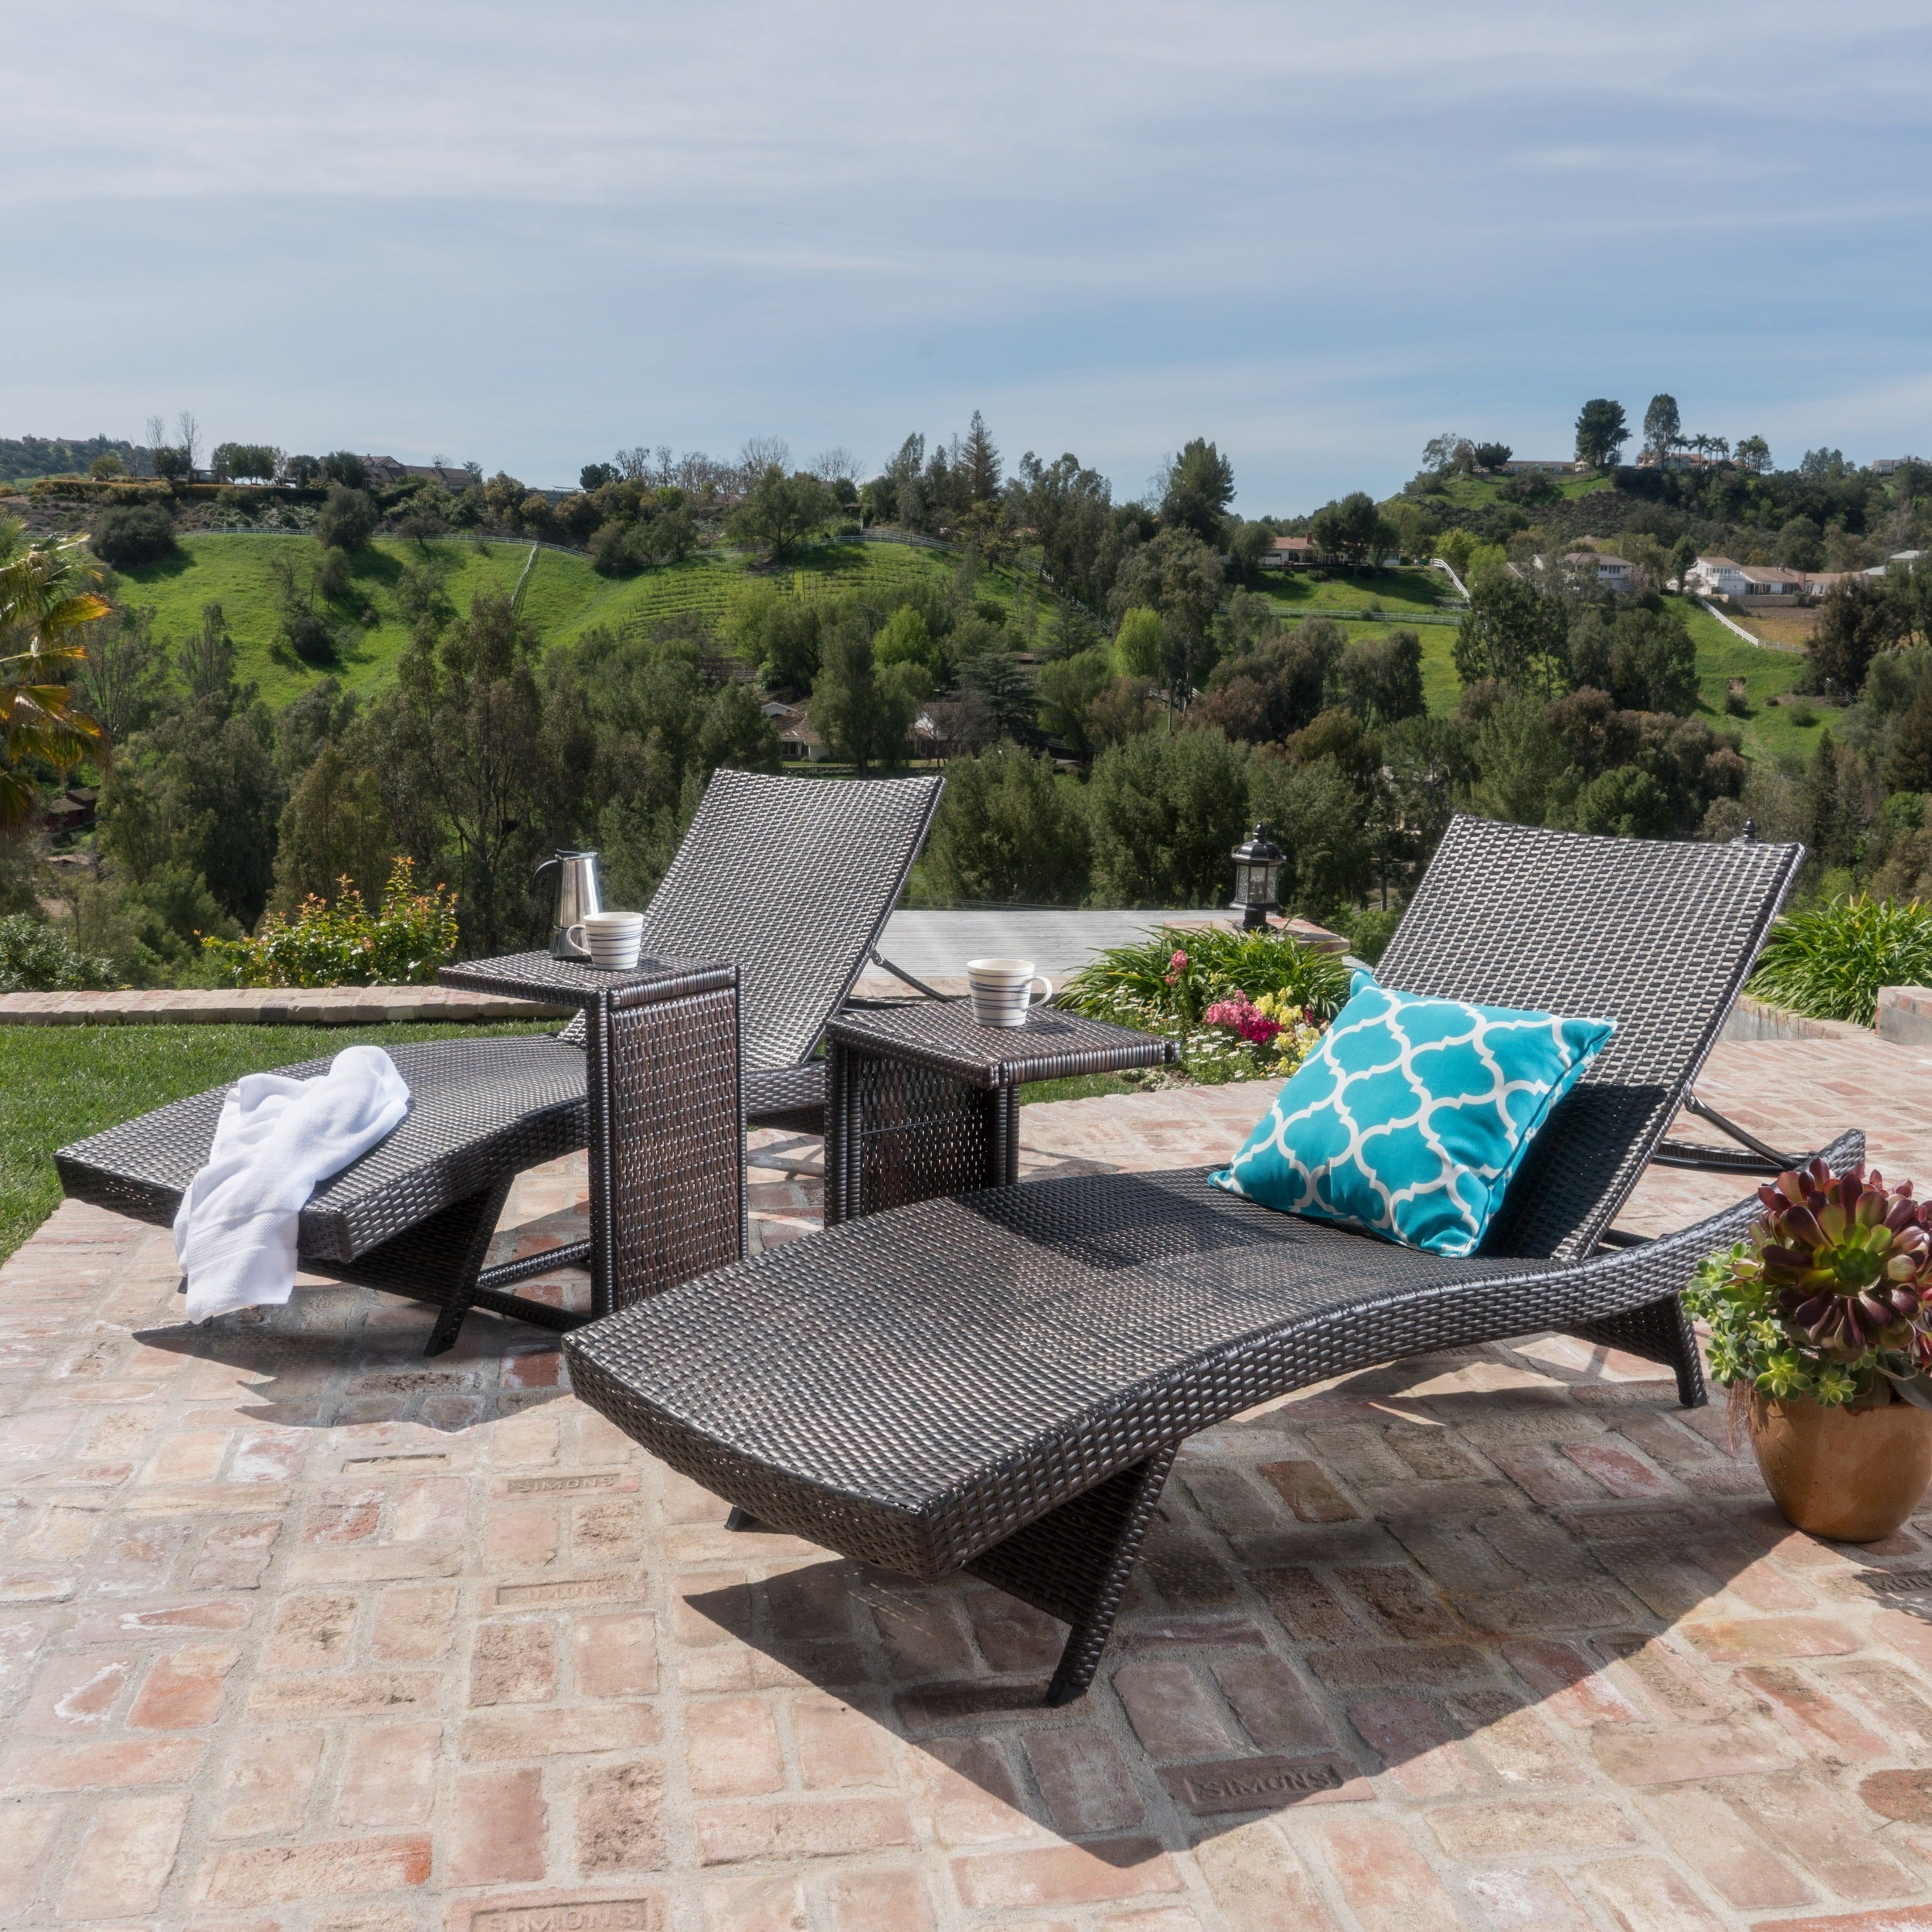 Toscana Outdoor Wicker Adjustable Chaise Lounge with C-sh...